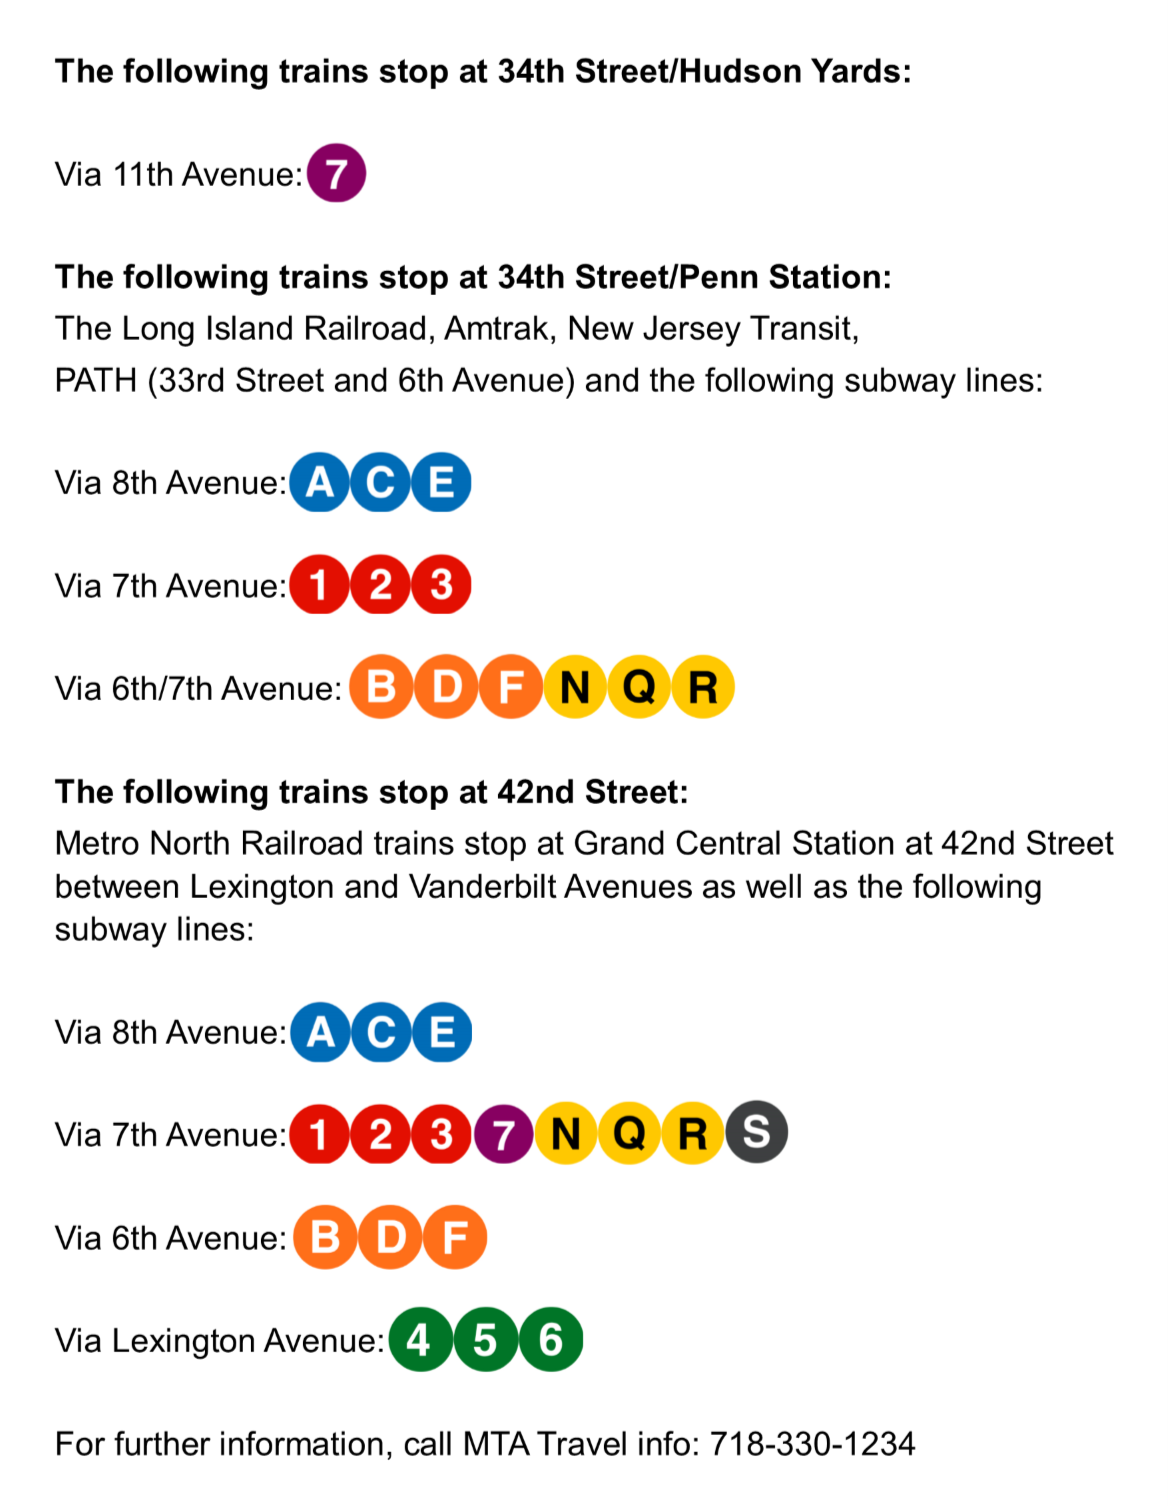 Directions on getting to Javits Center via trains